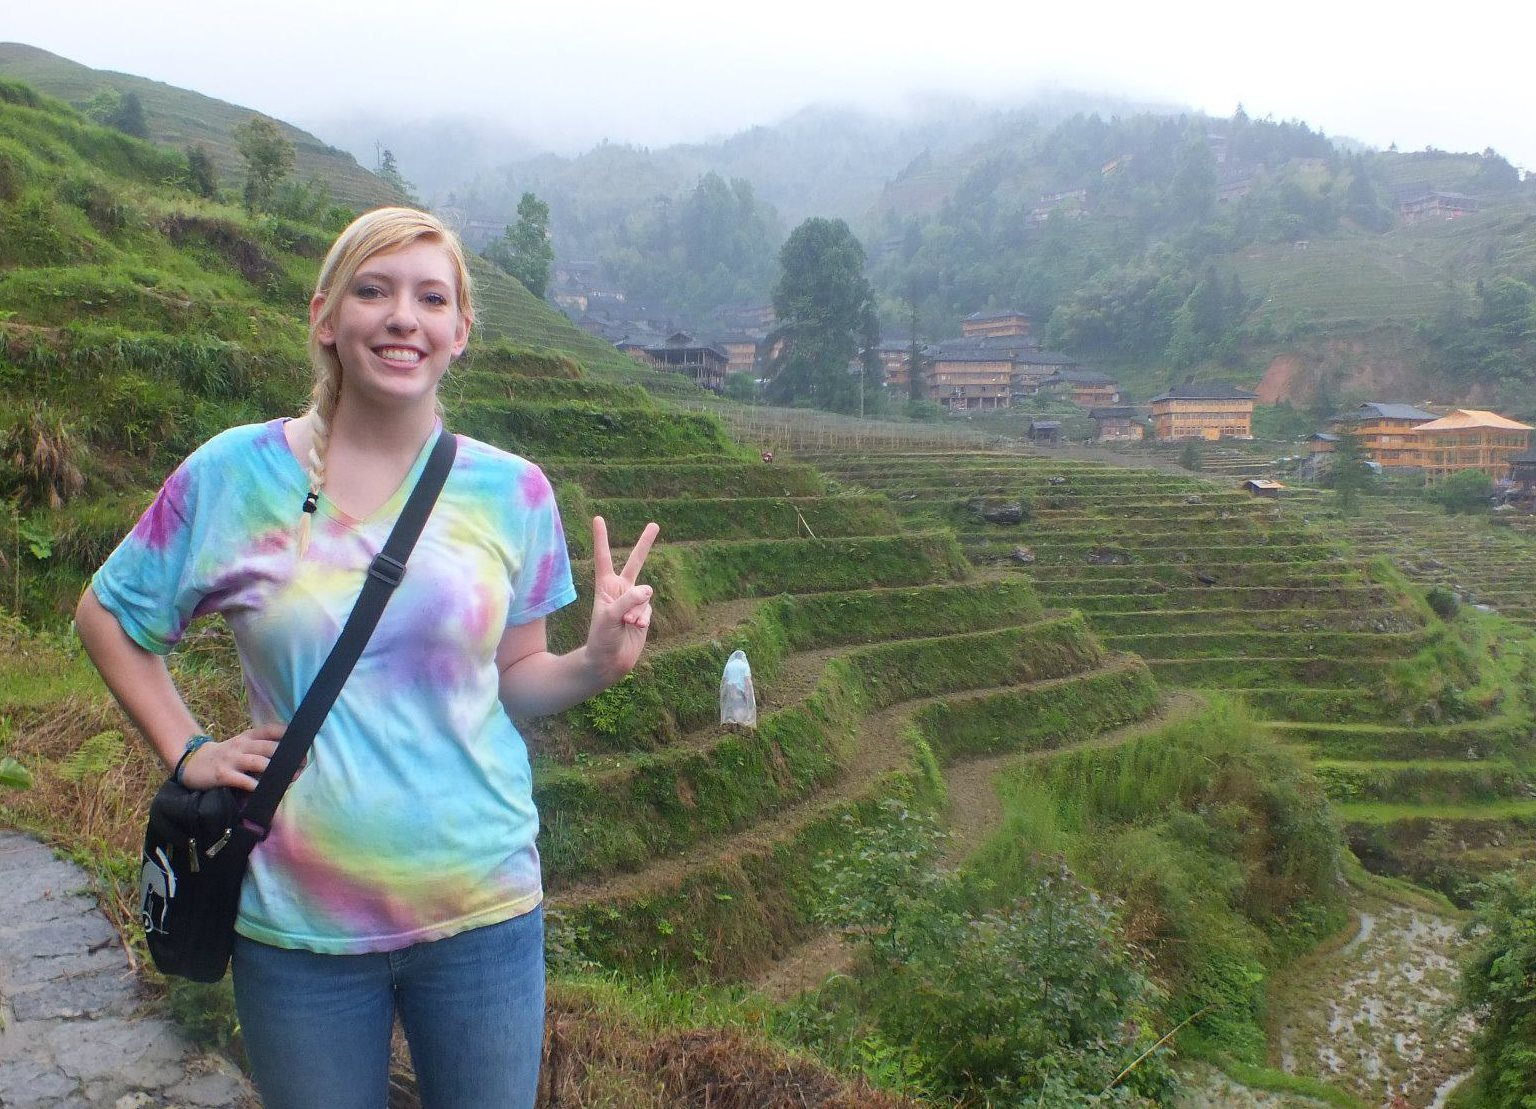 Me_at_the_Rice_Terraces.jpg